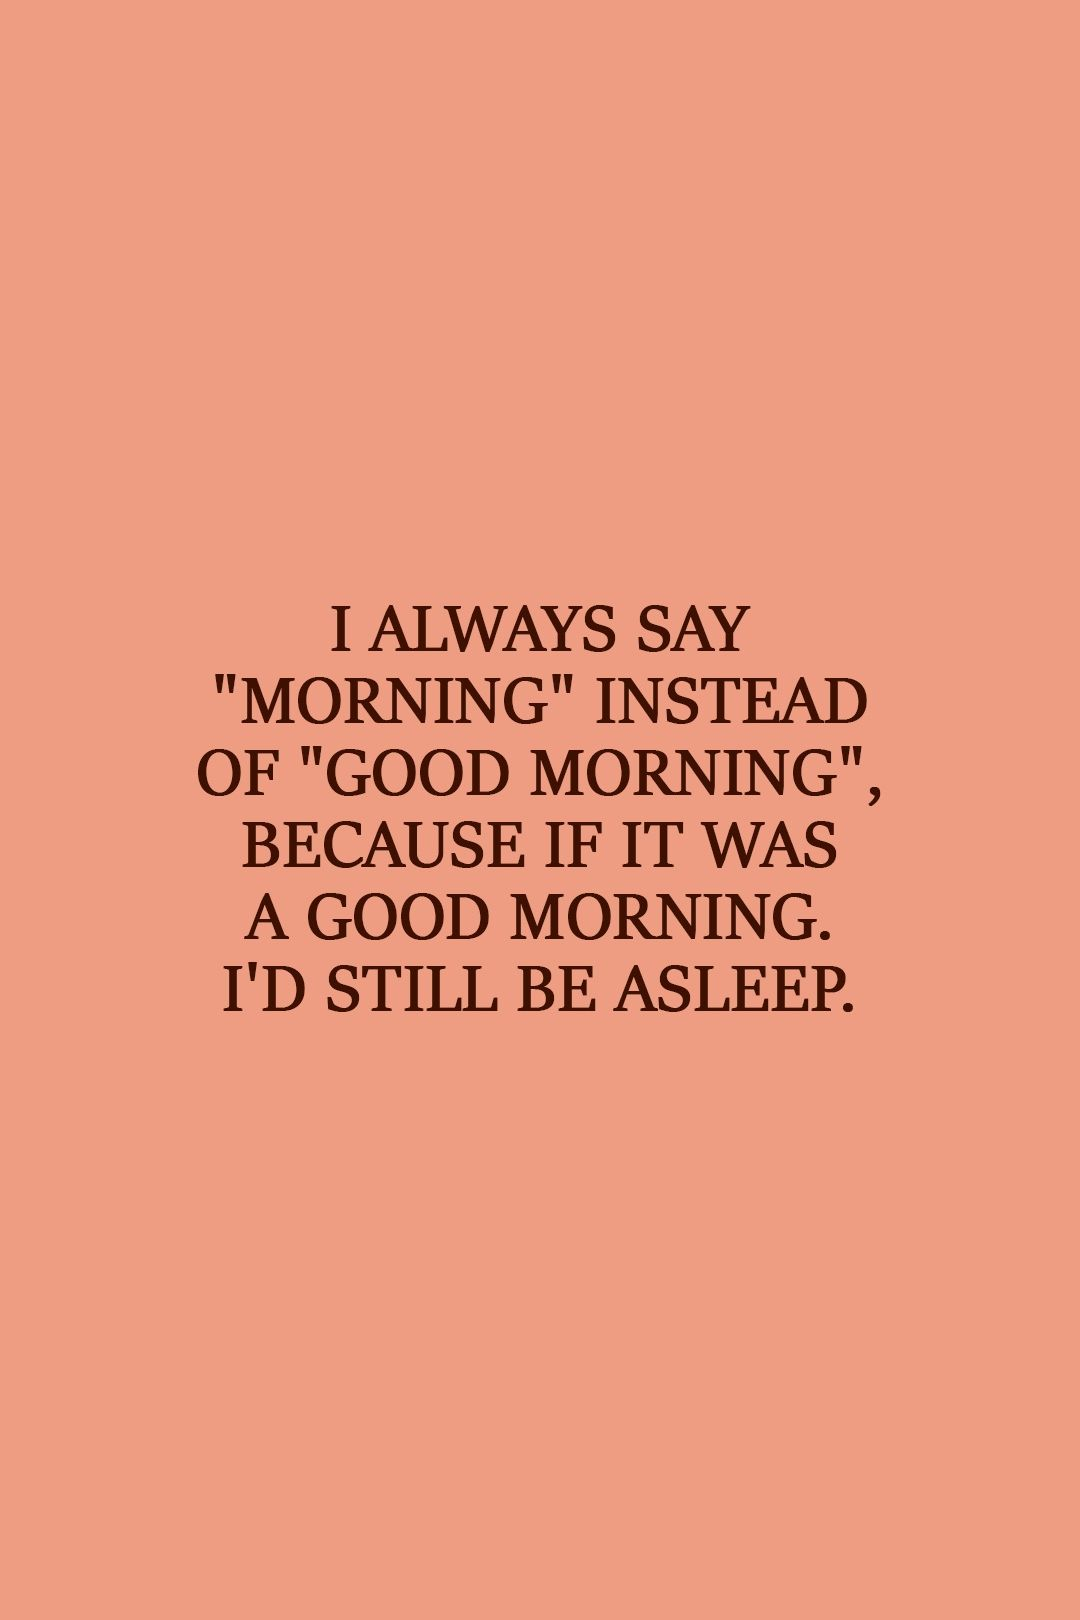 40 Best Laziness Quotes Scattered Quotes In 2021 Lazy Quotes Be Yourself Quotes Quote Aesthetic